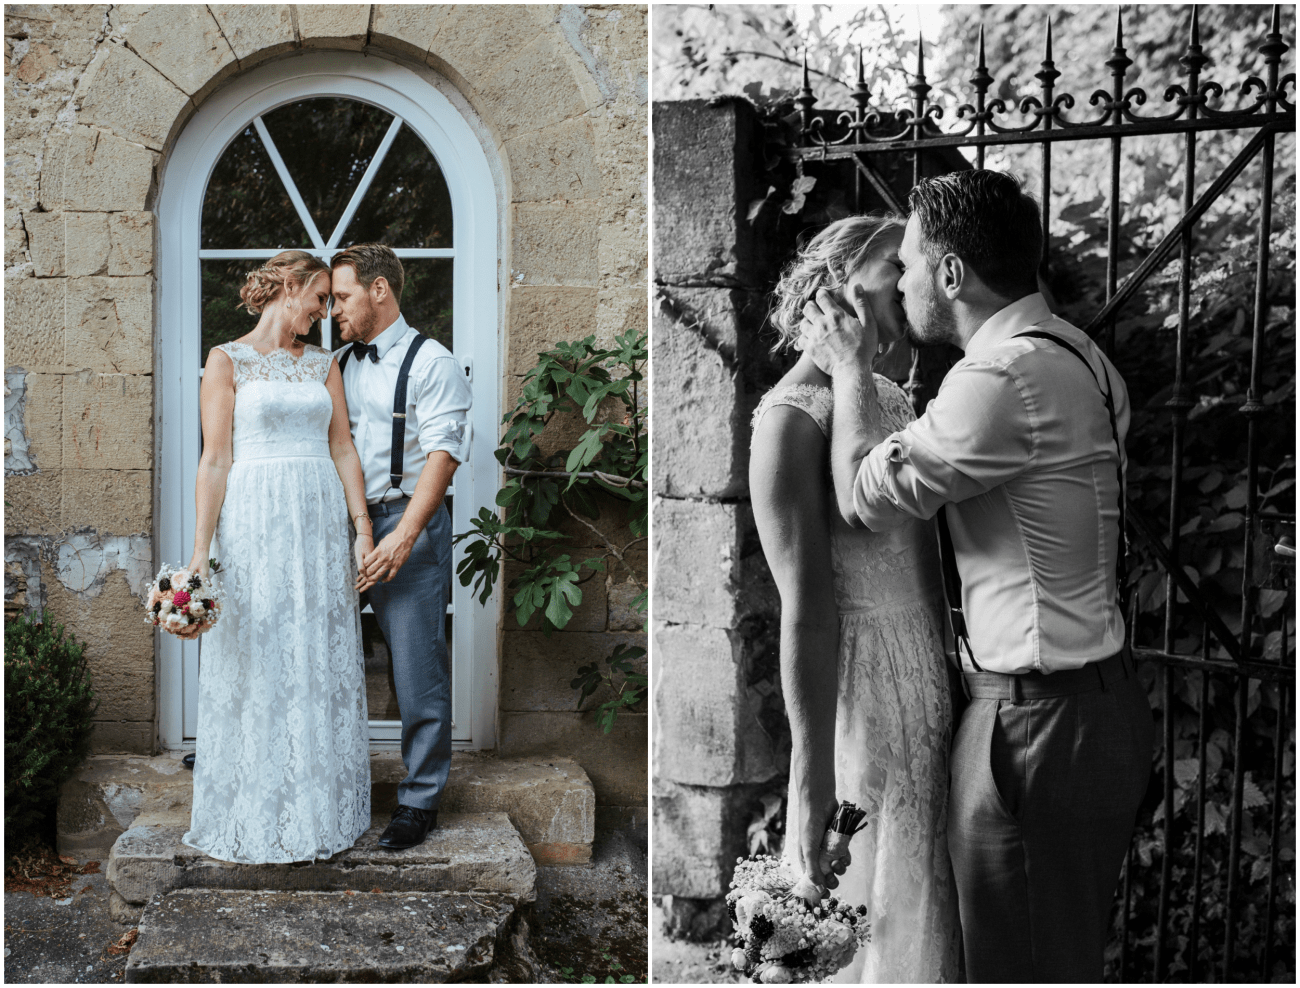 sonjanetzlafphotography_anni&oli_collage_13